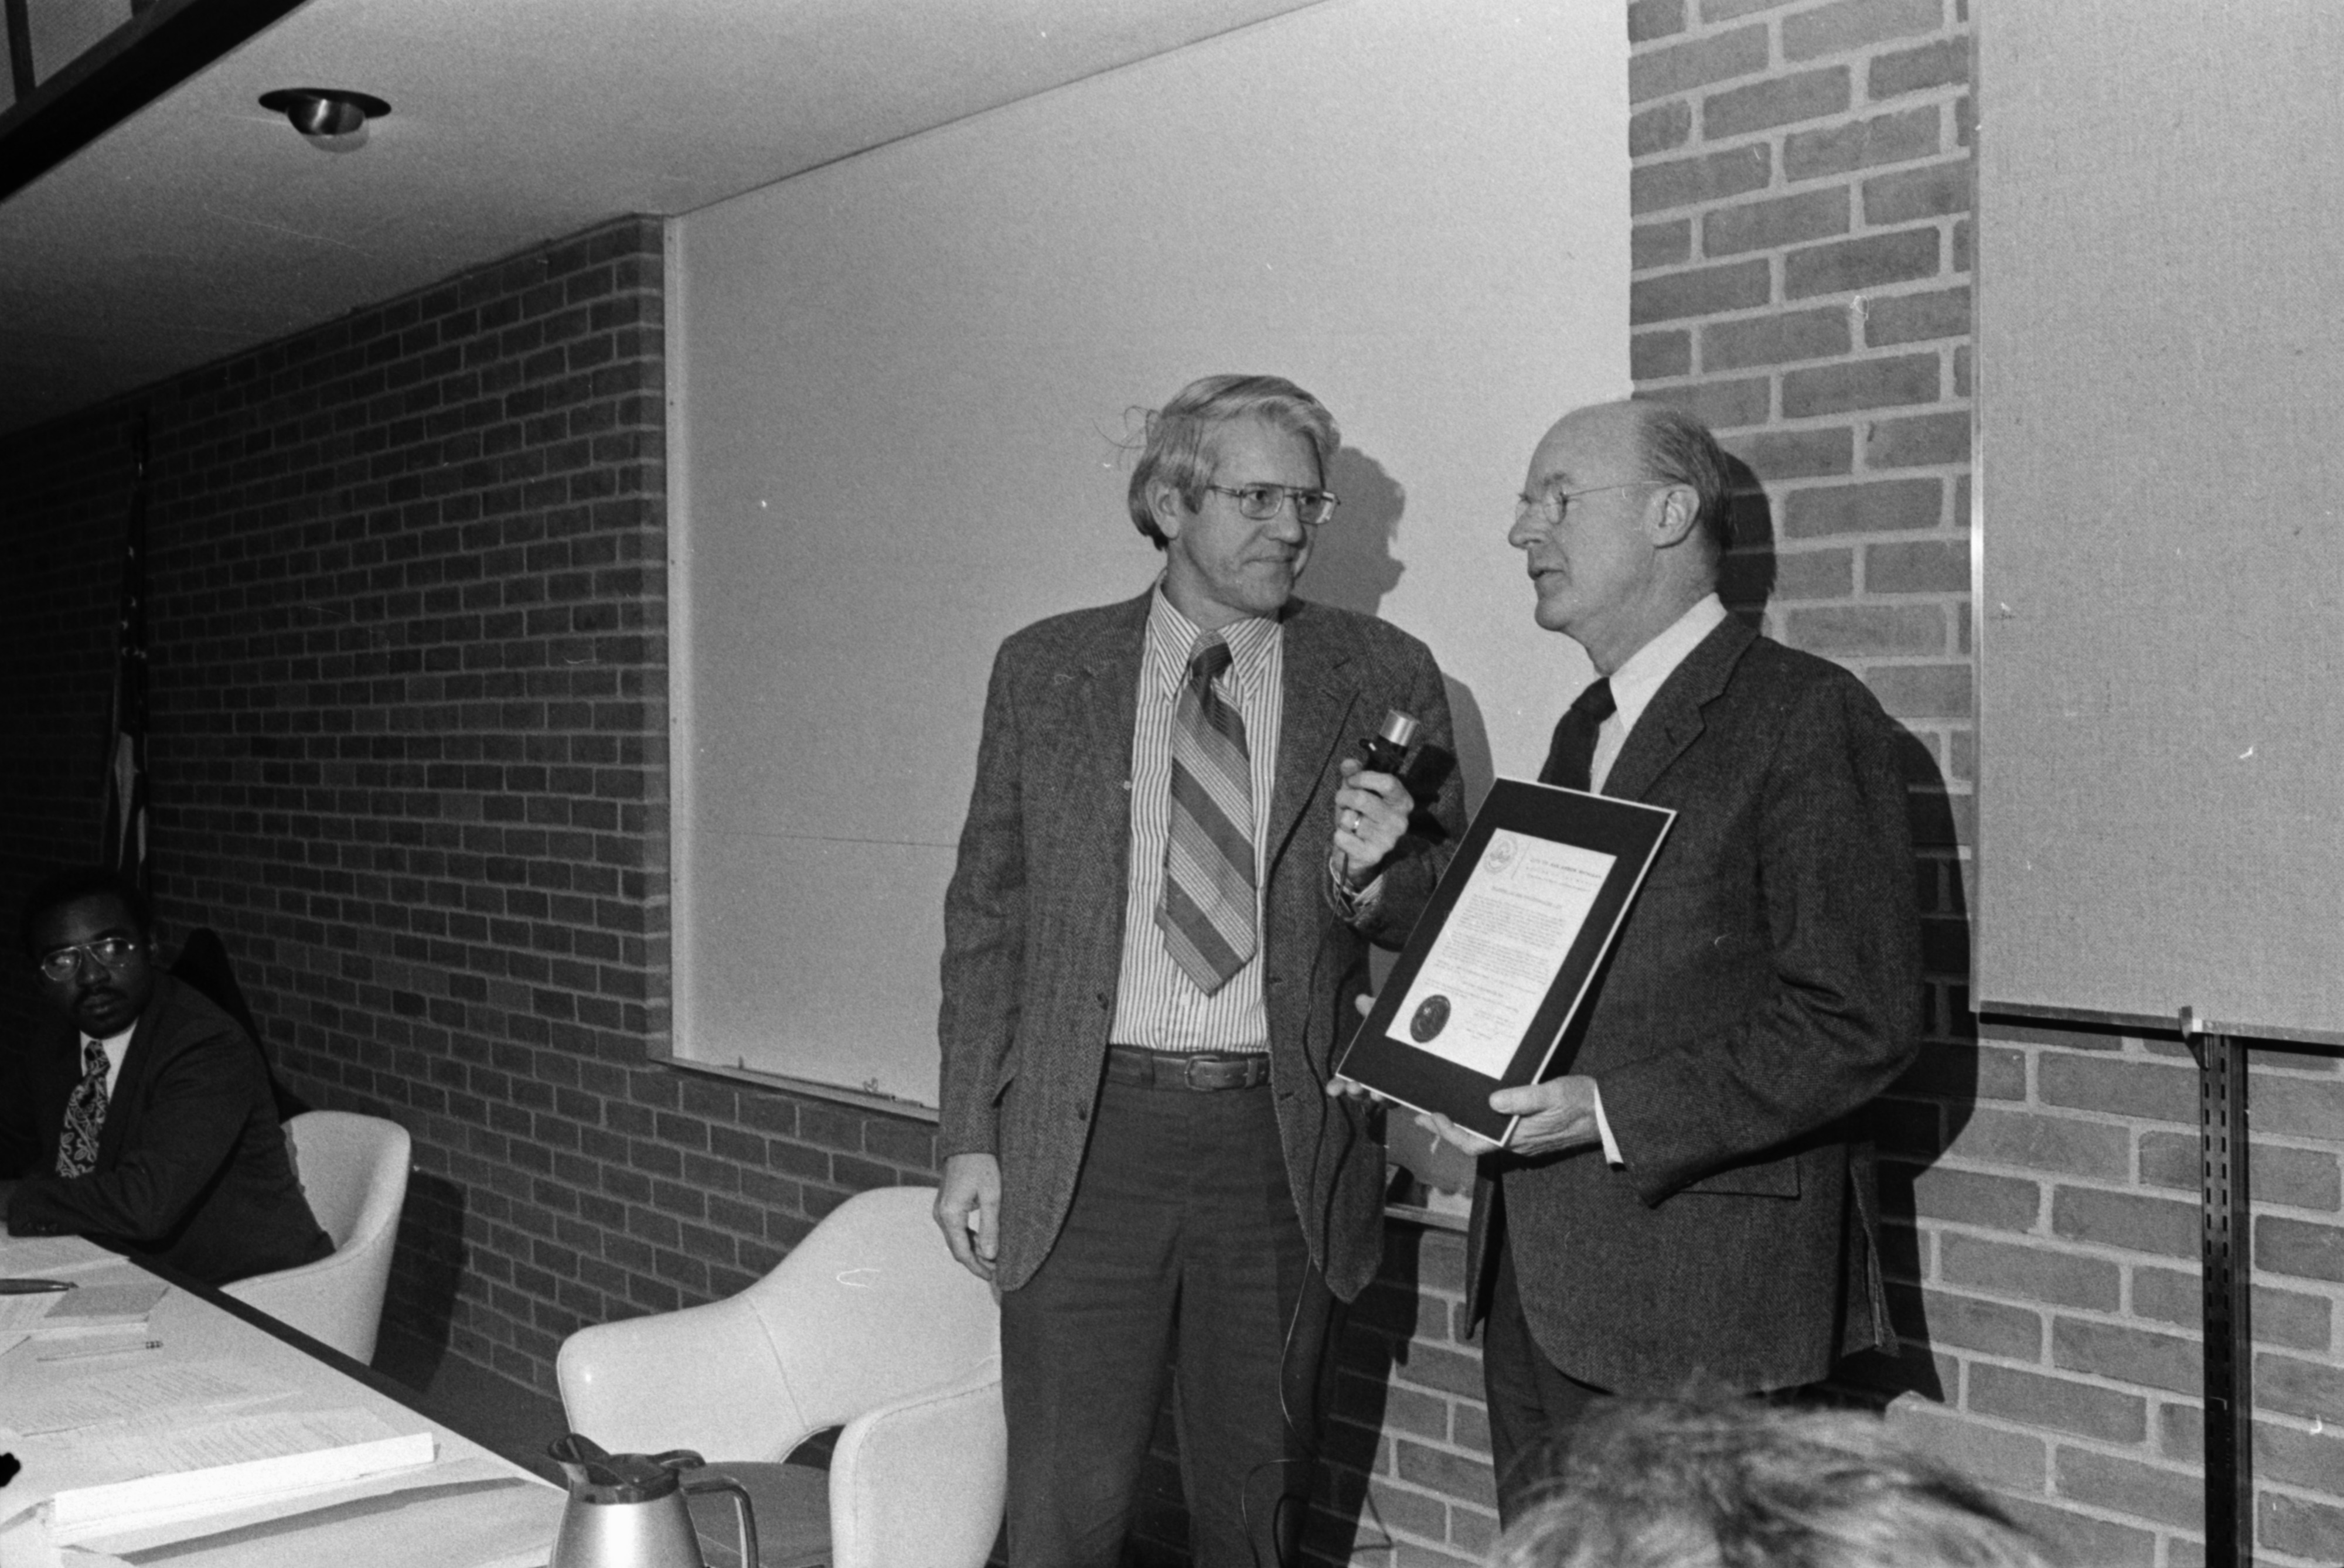 Sesquicentennial Chairman Douglas Crary, at City Council with Sesquicentennial proclamation, January 7, 1974 image